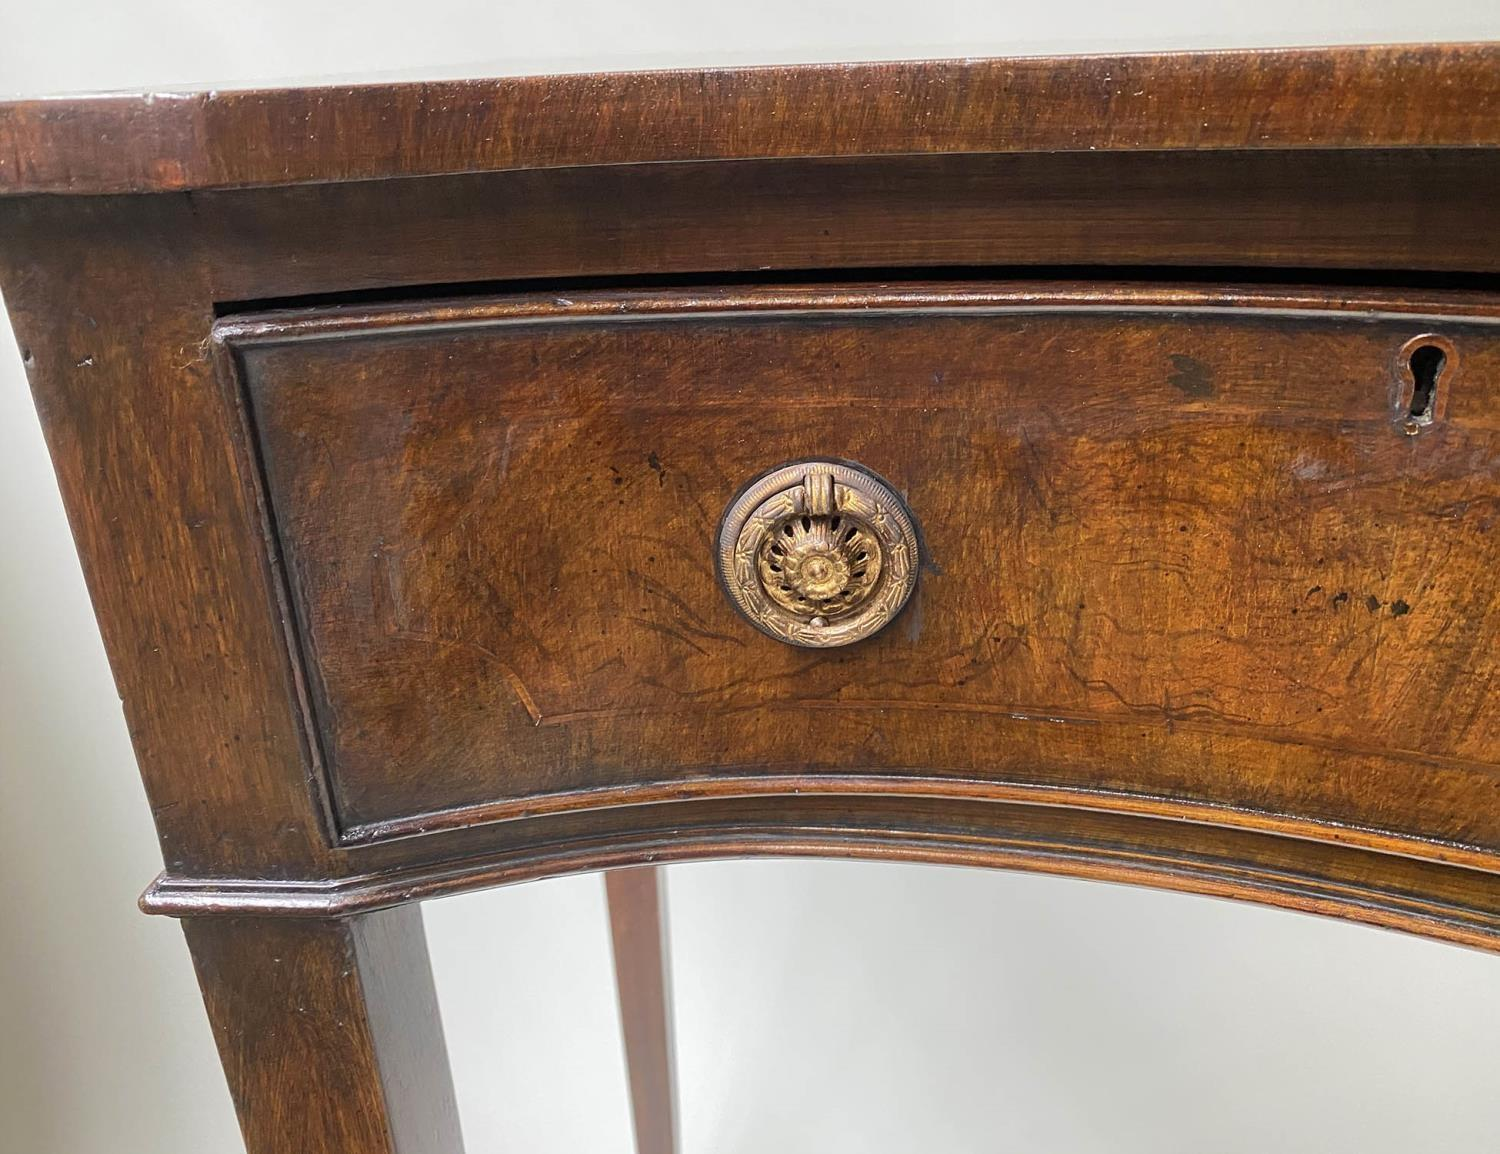 HALL TABLE, George III style figured mahogany and brass inlaid of serpentine outline with two frieze - Image 8 of 9